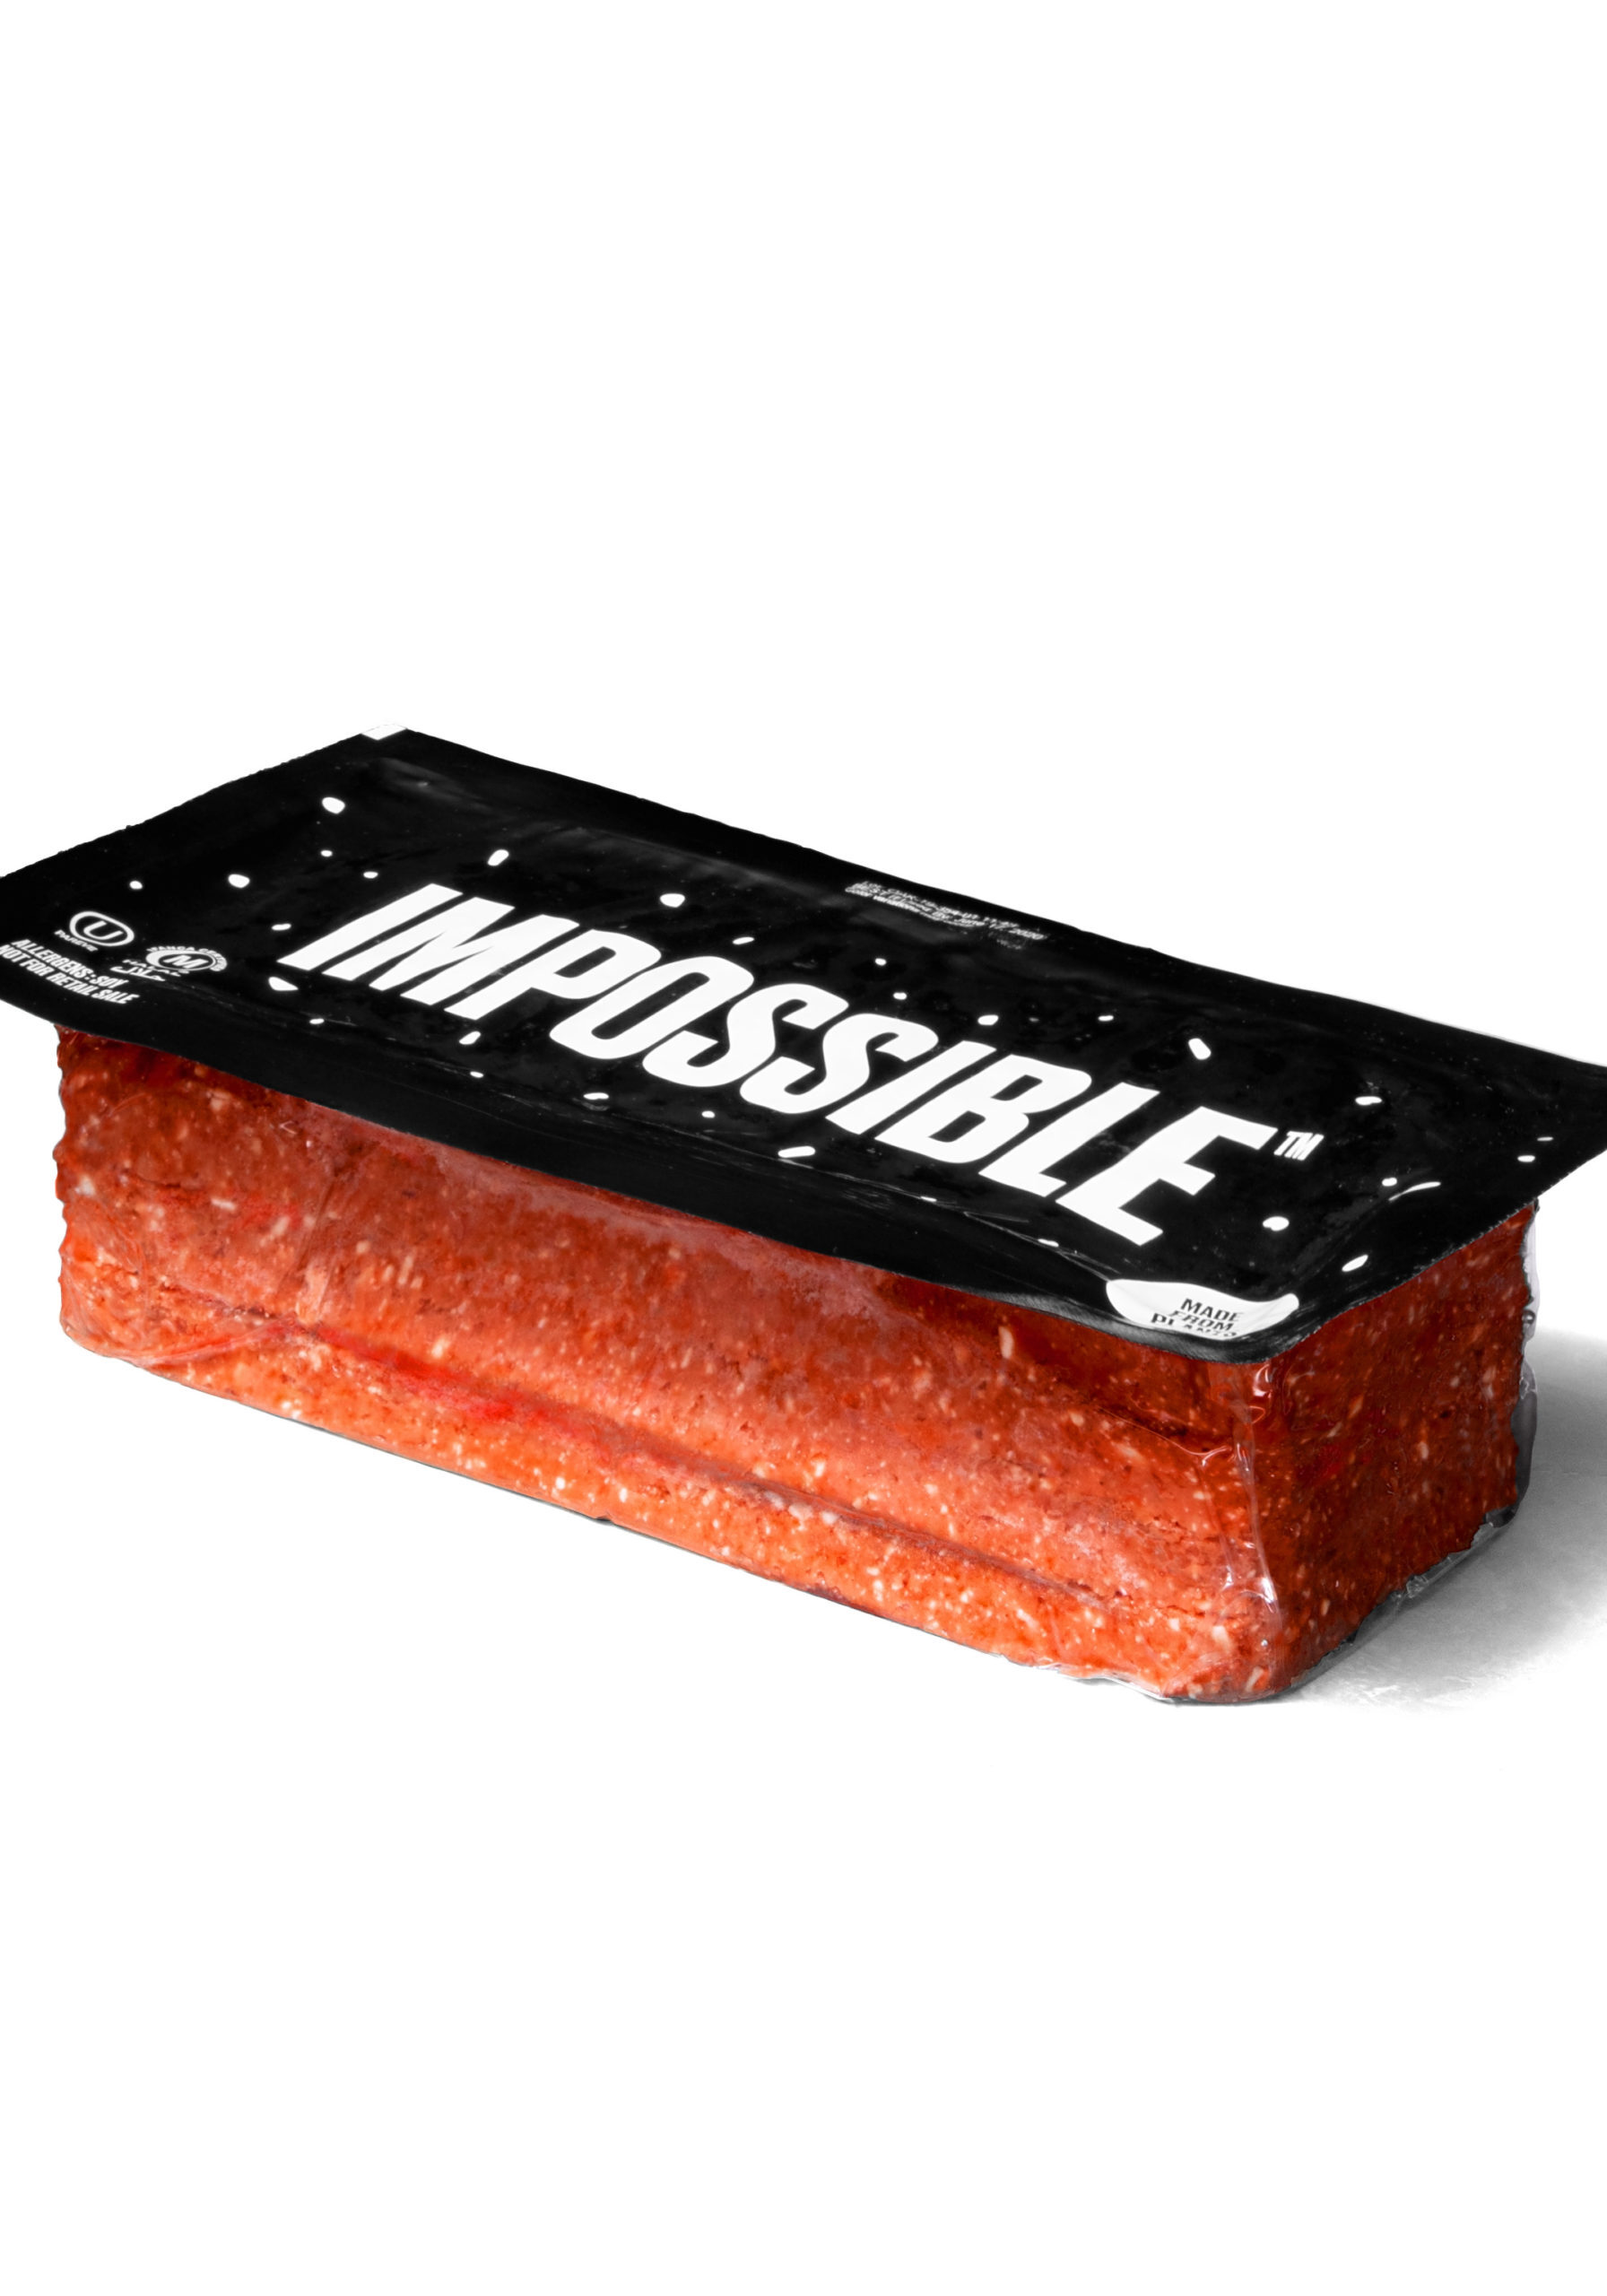 Buy Impossible Meat Brick Singapore- Vegan Wholesale Retail